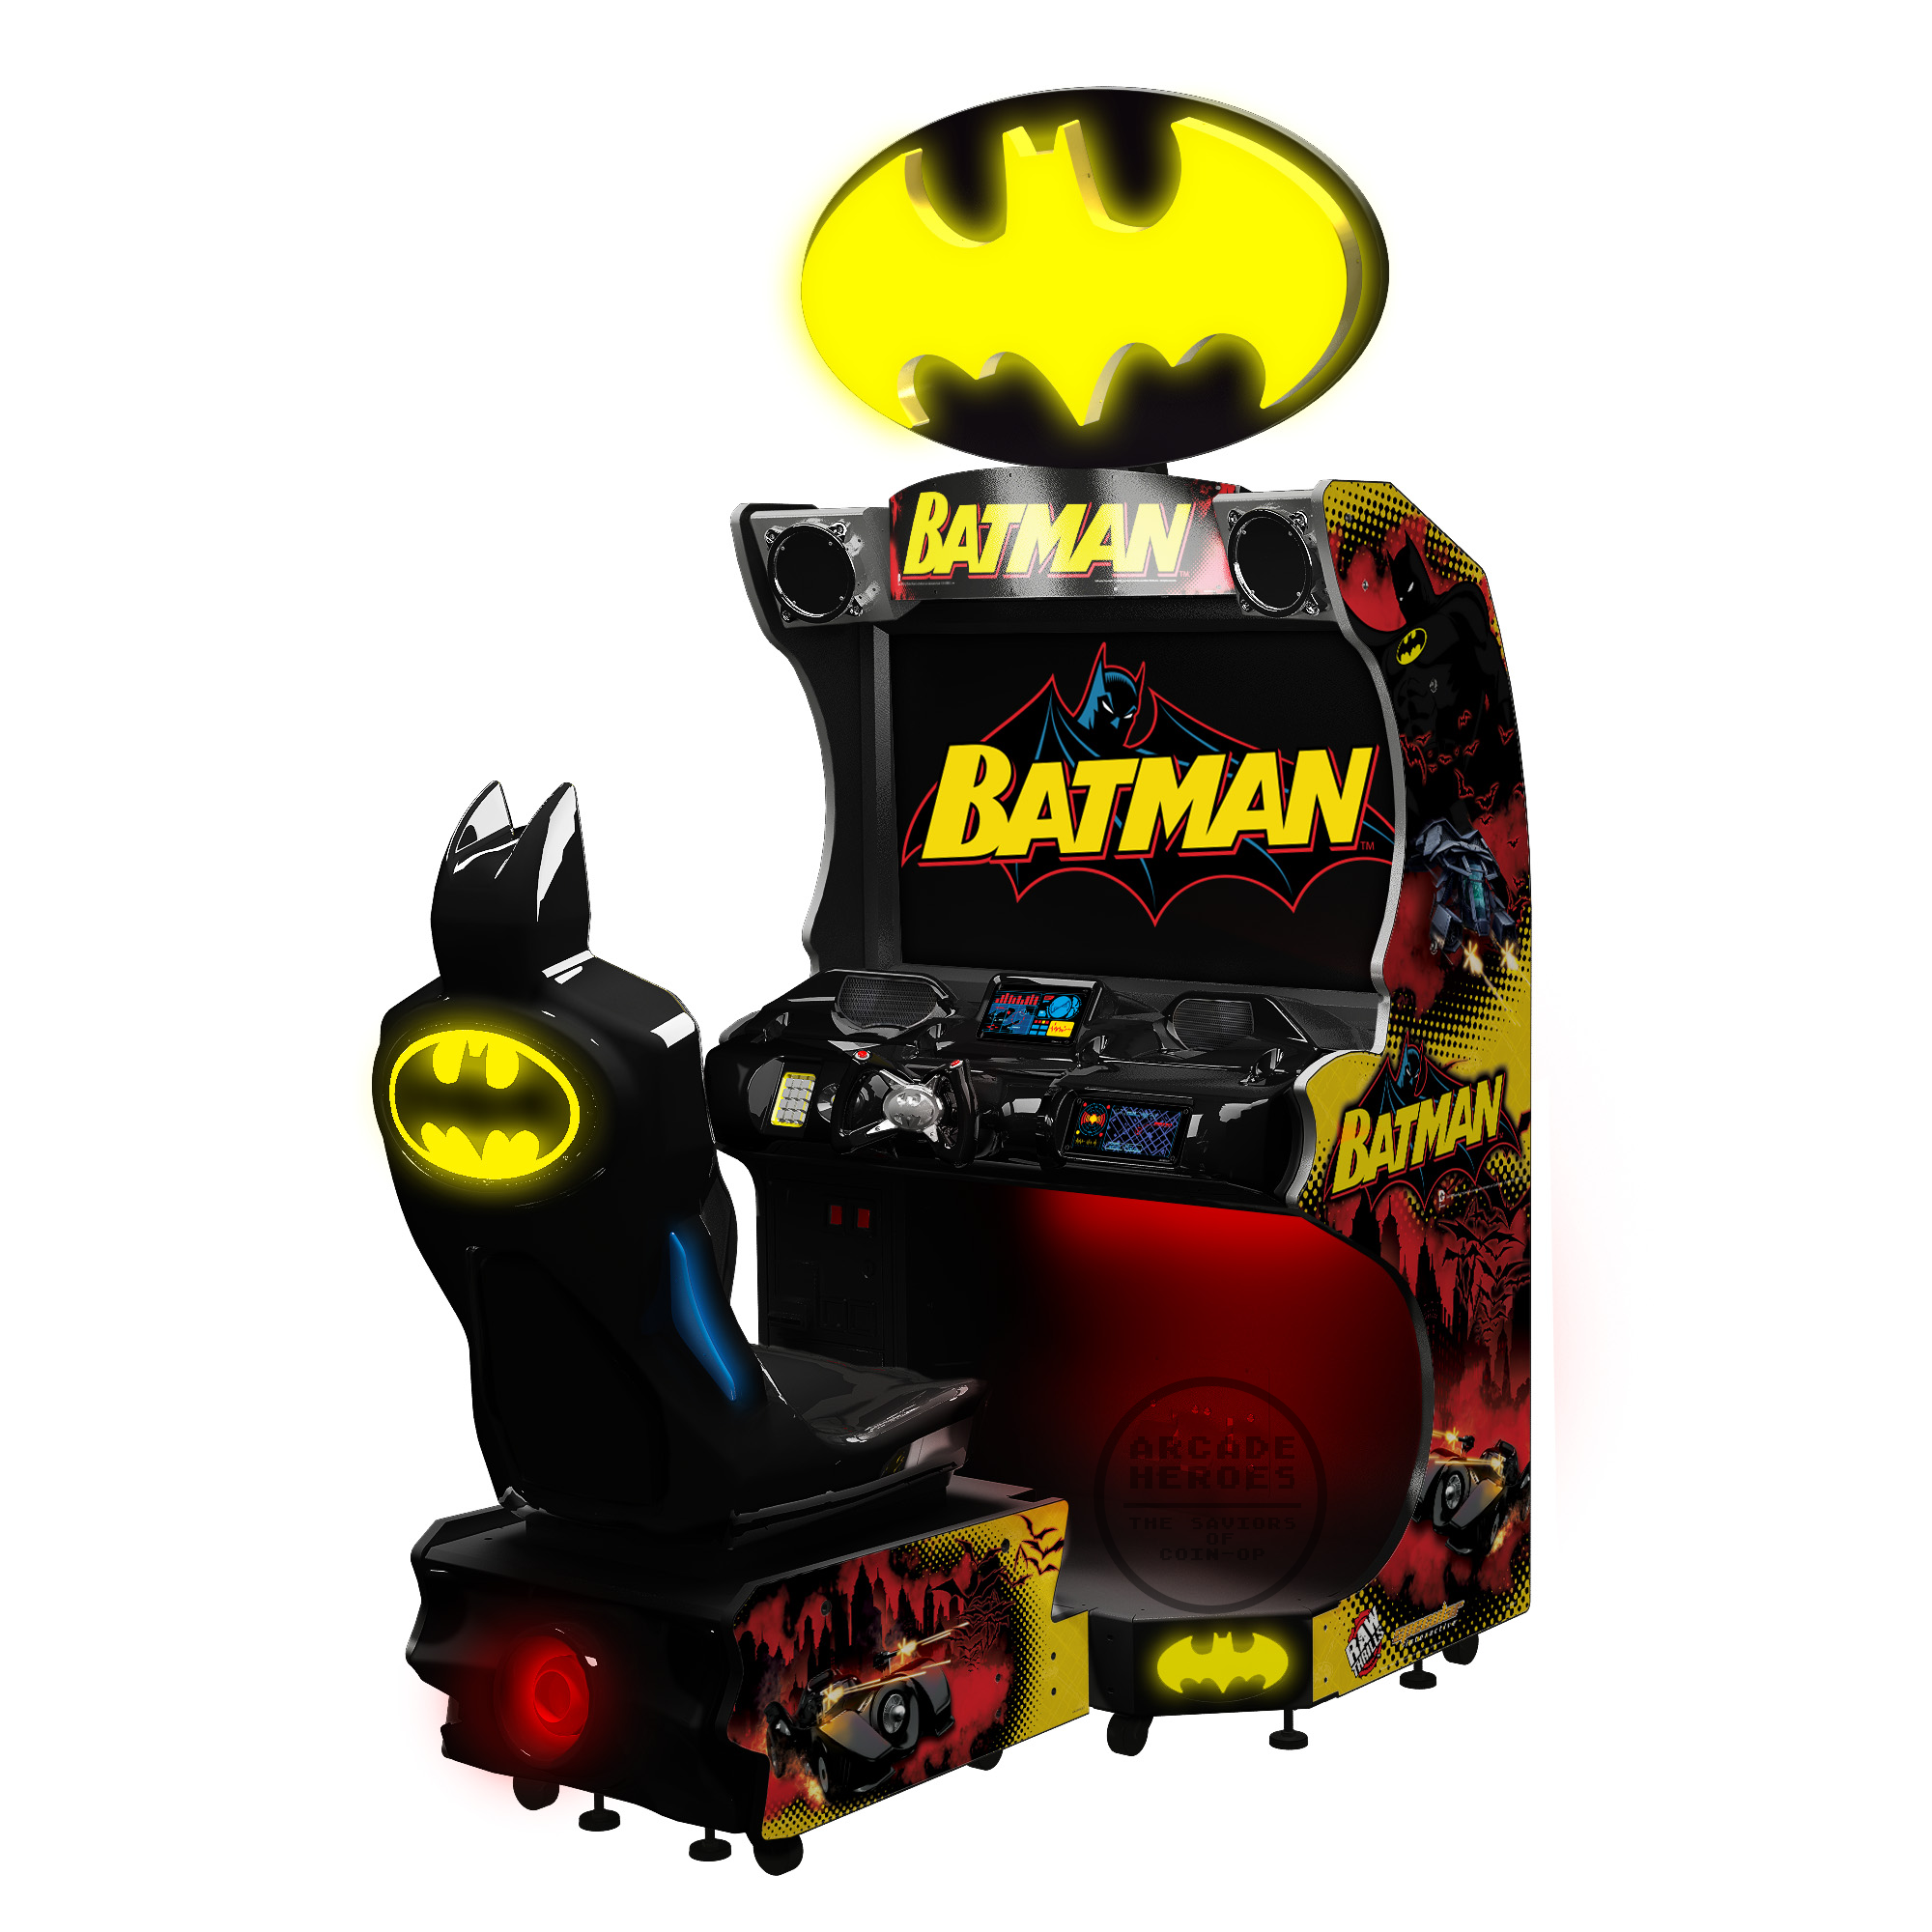 New Batman Racing Arcade Game Arcade And Pinball